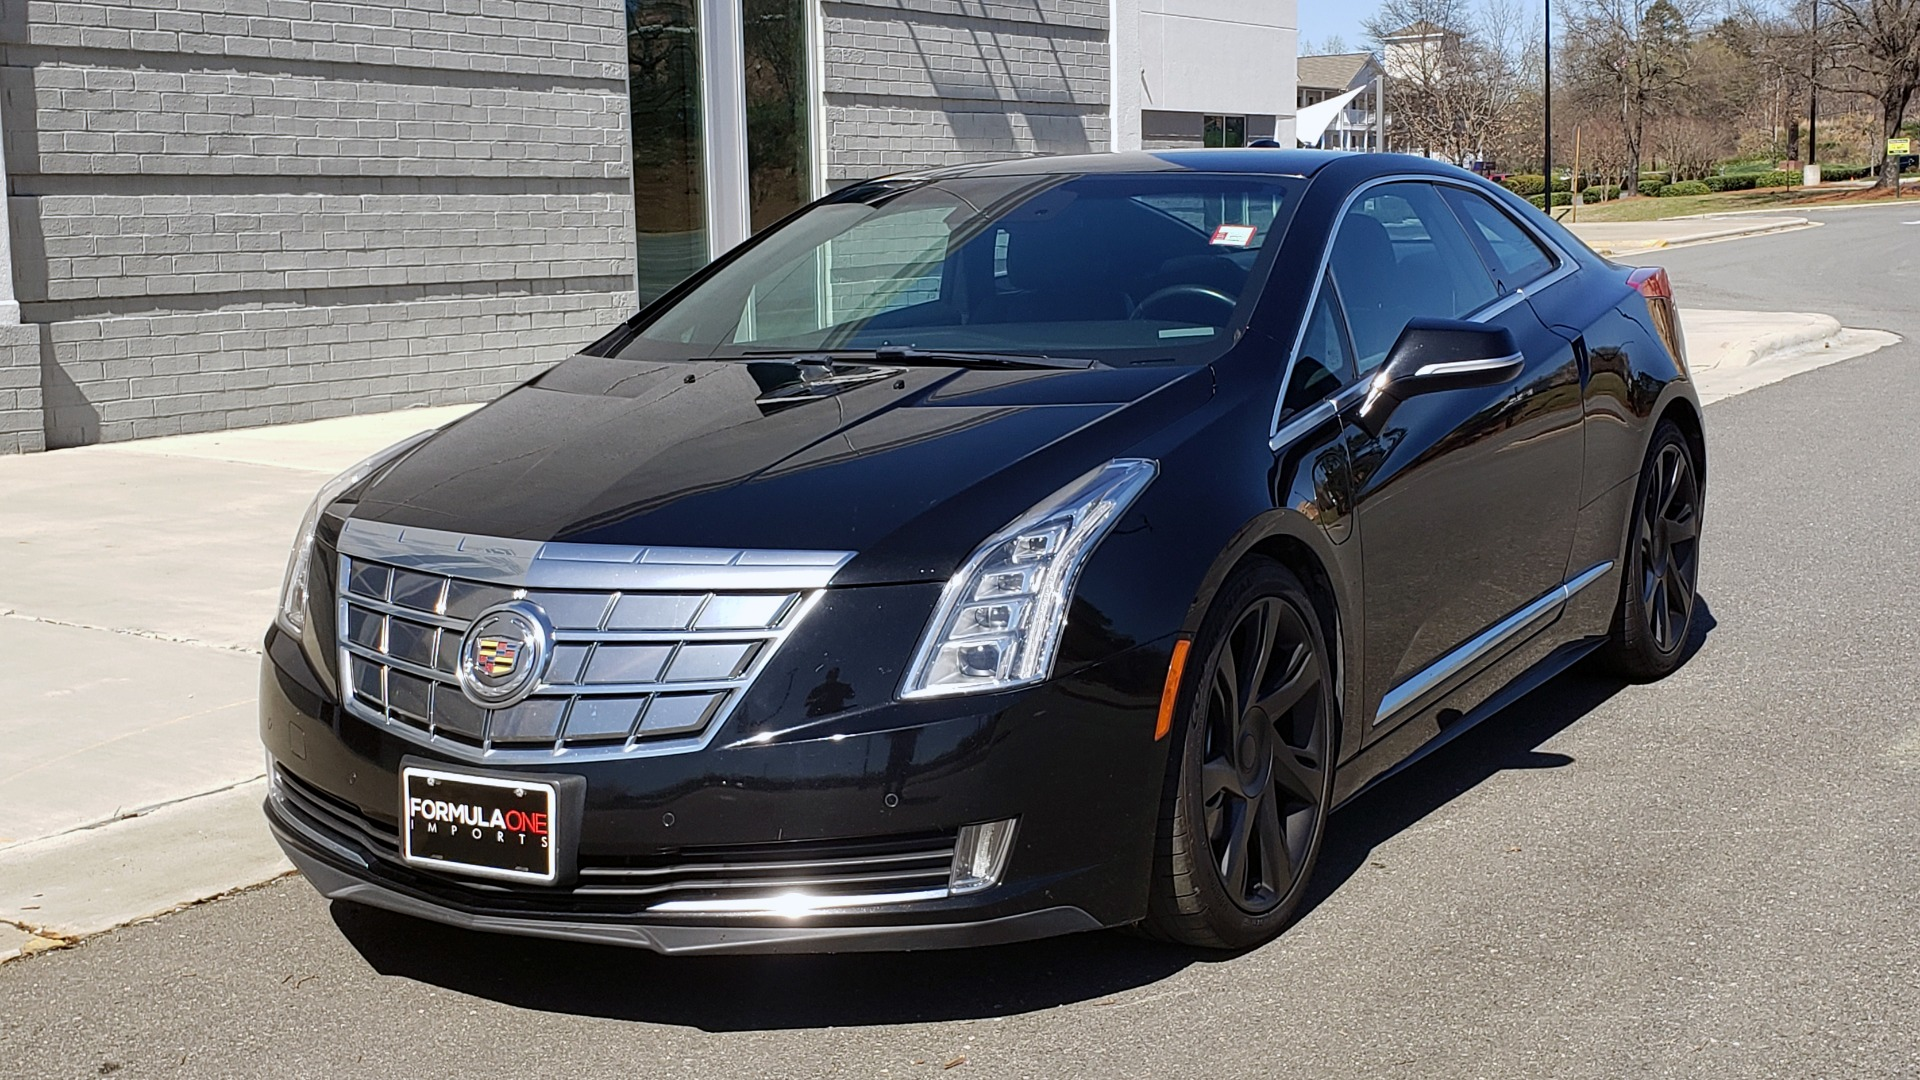 Used 2014 Cadillac ELR 2DR COUPE / HYBRID / NAV / BOSE / HEATED SEATS / REARVIEW for sale $19,995 at Formula Imports in Charlotte NC 28227 1